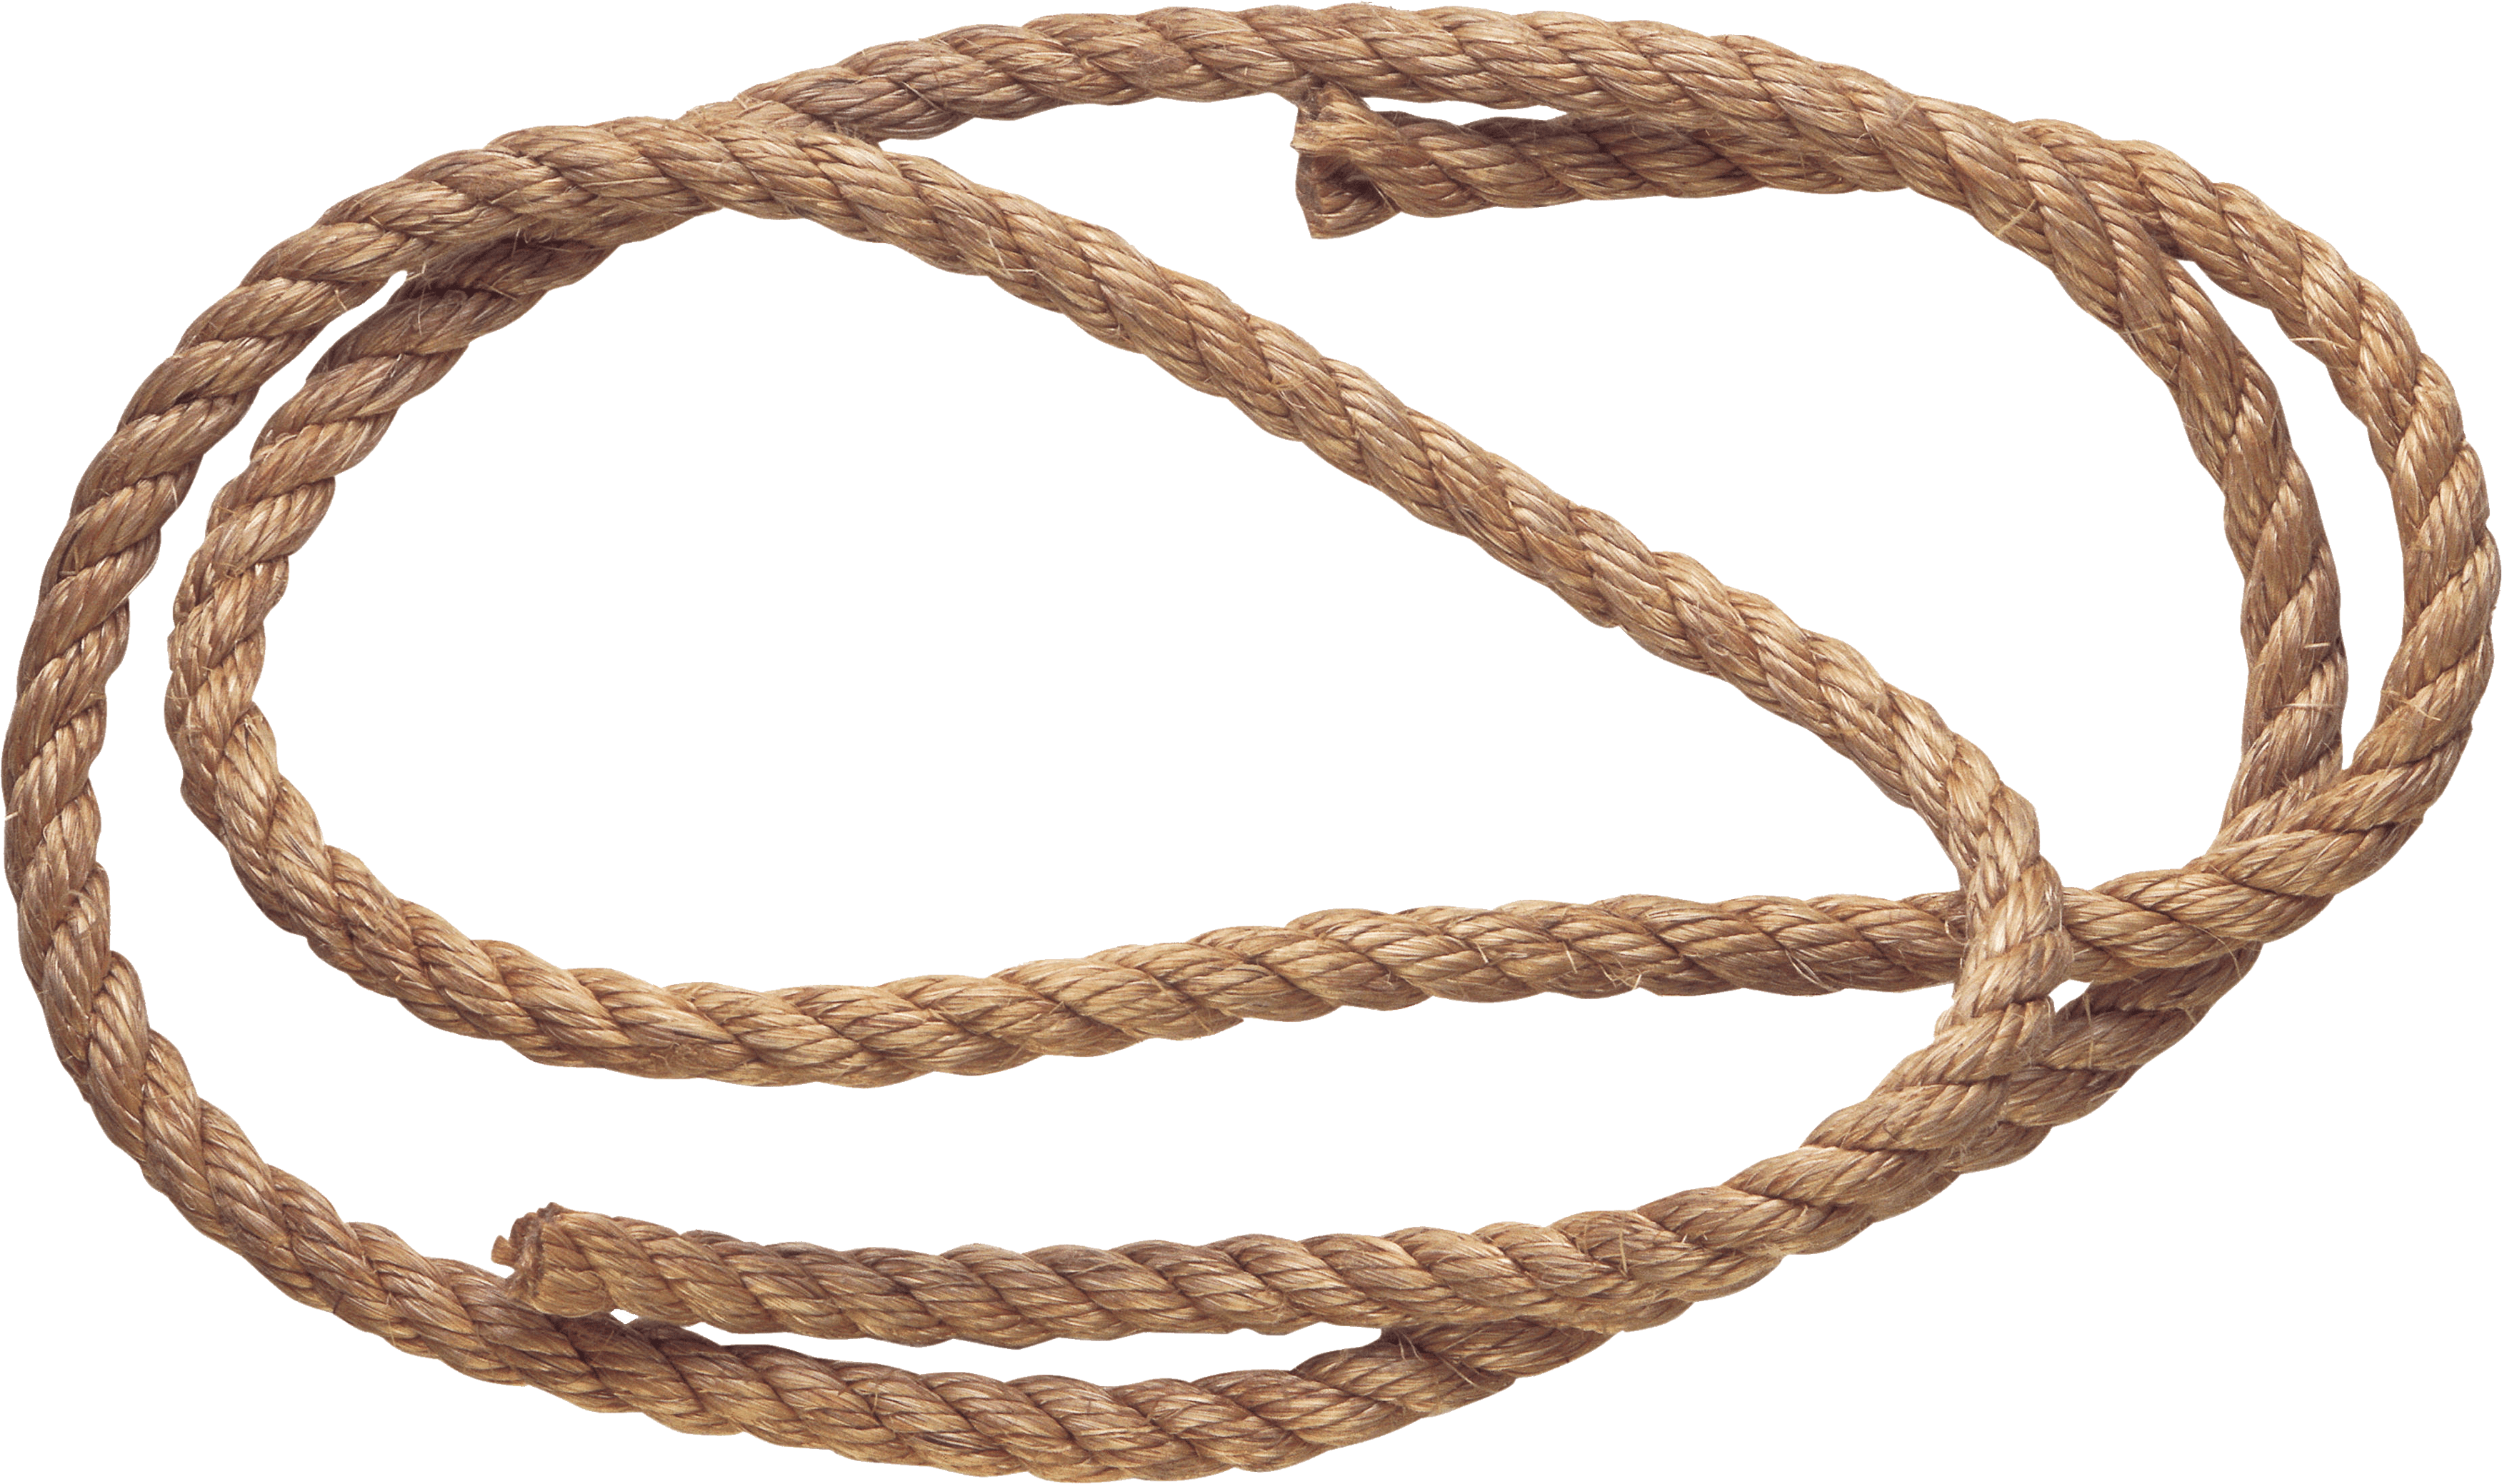 Rope clipart png graphic royalty free download Small Rope HD transparent PNG - StickPNG graphic royalty free download